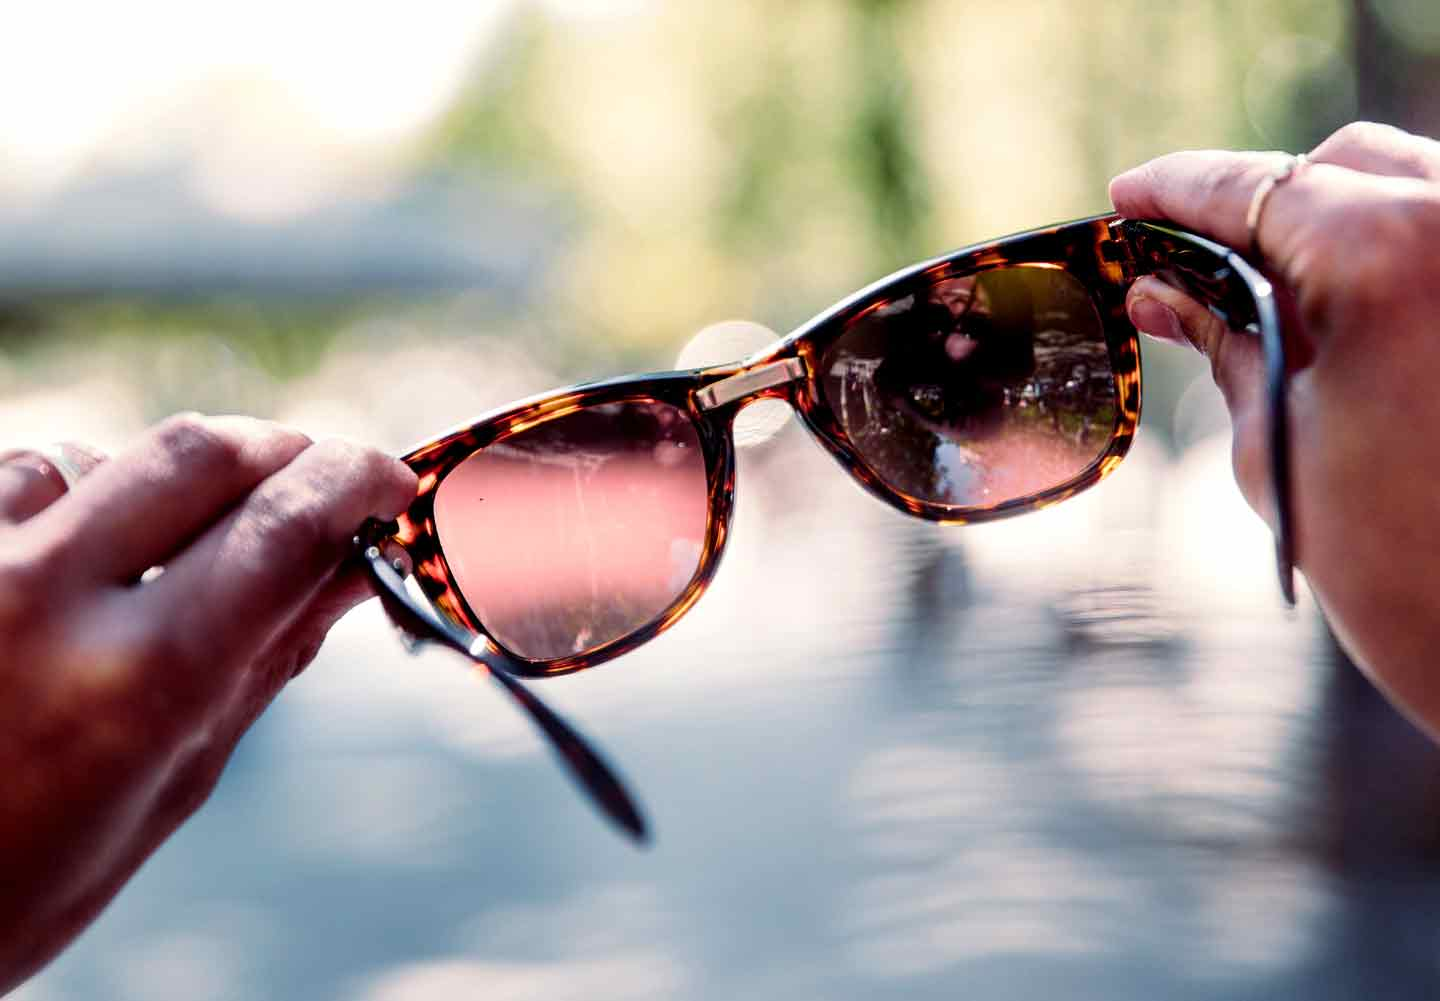 A Guide to Choosing Sunglasses - Protect Your Eyes